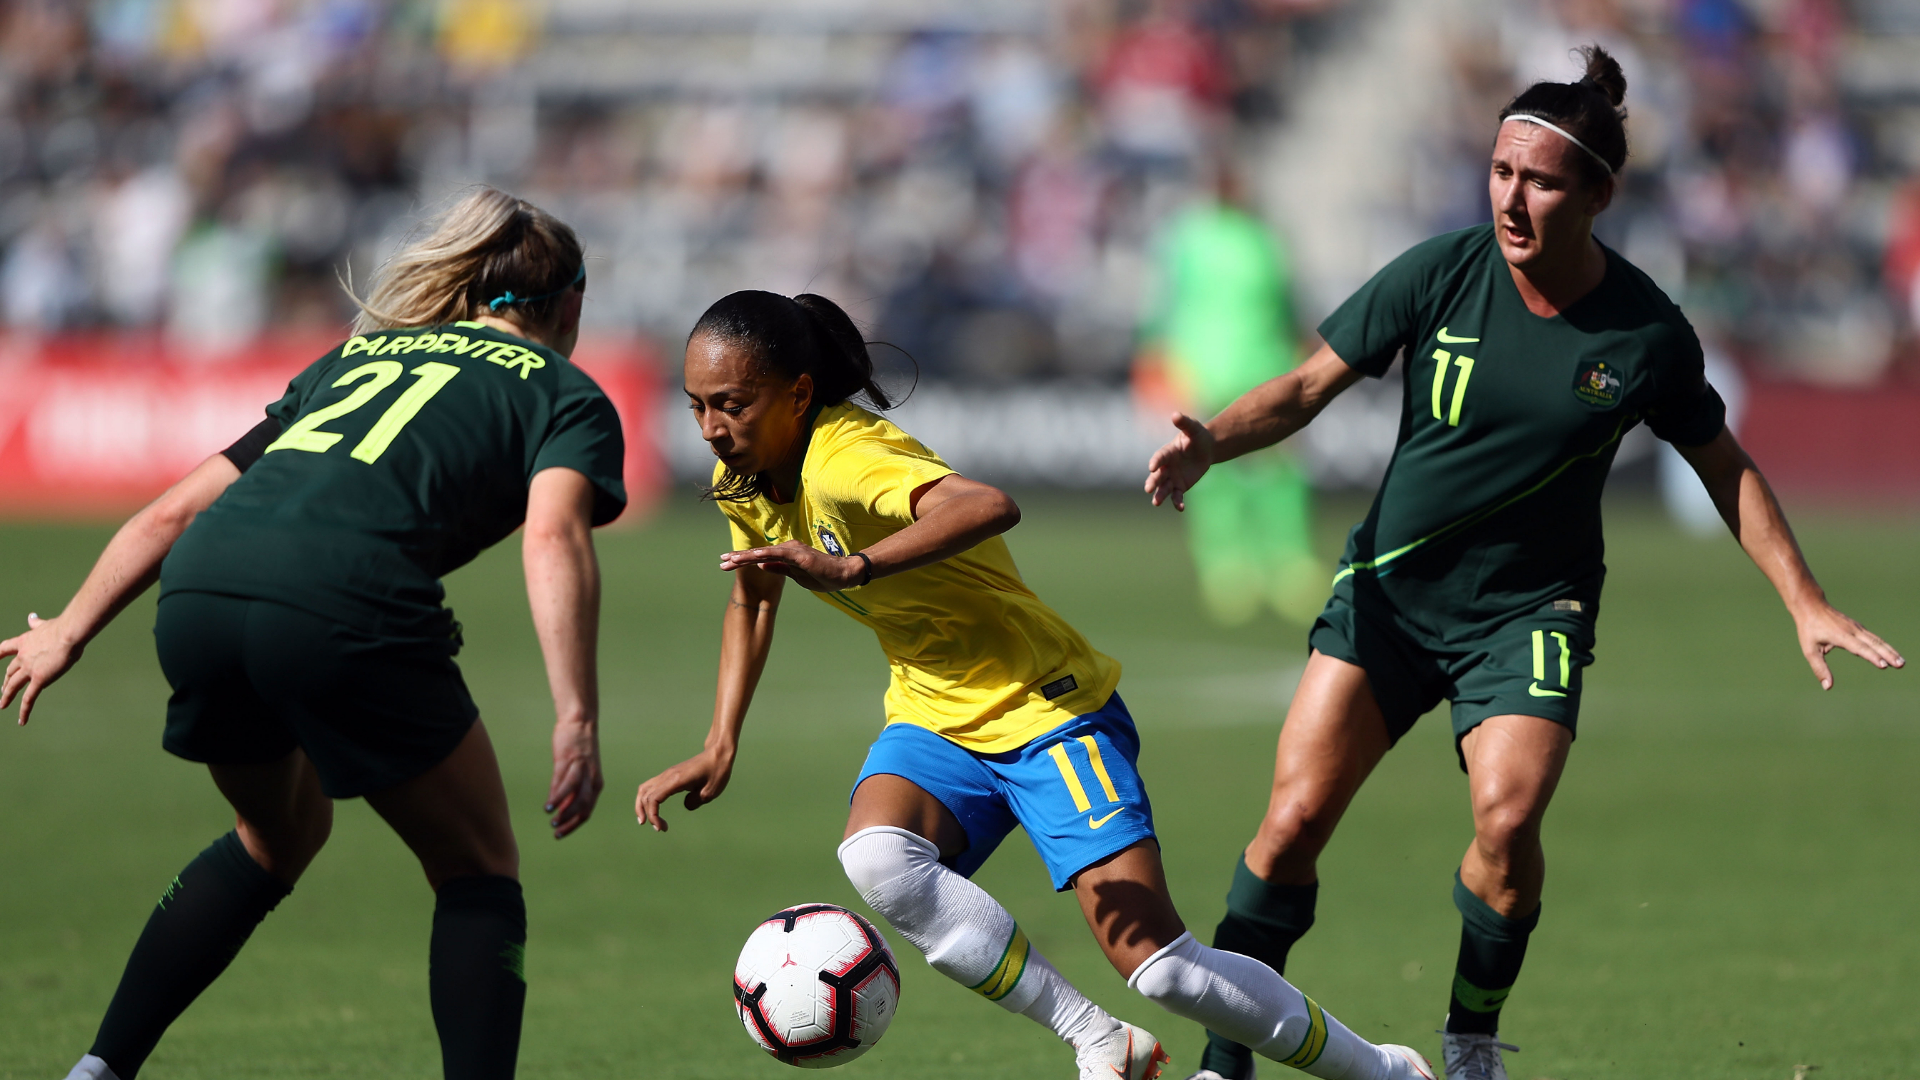 Australia overcomes two-goal deficit to beat Brazil 3-2